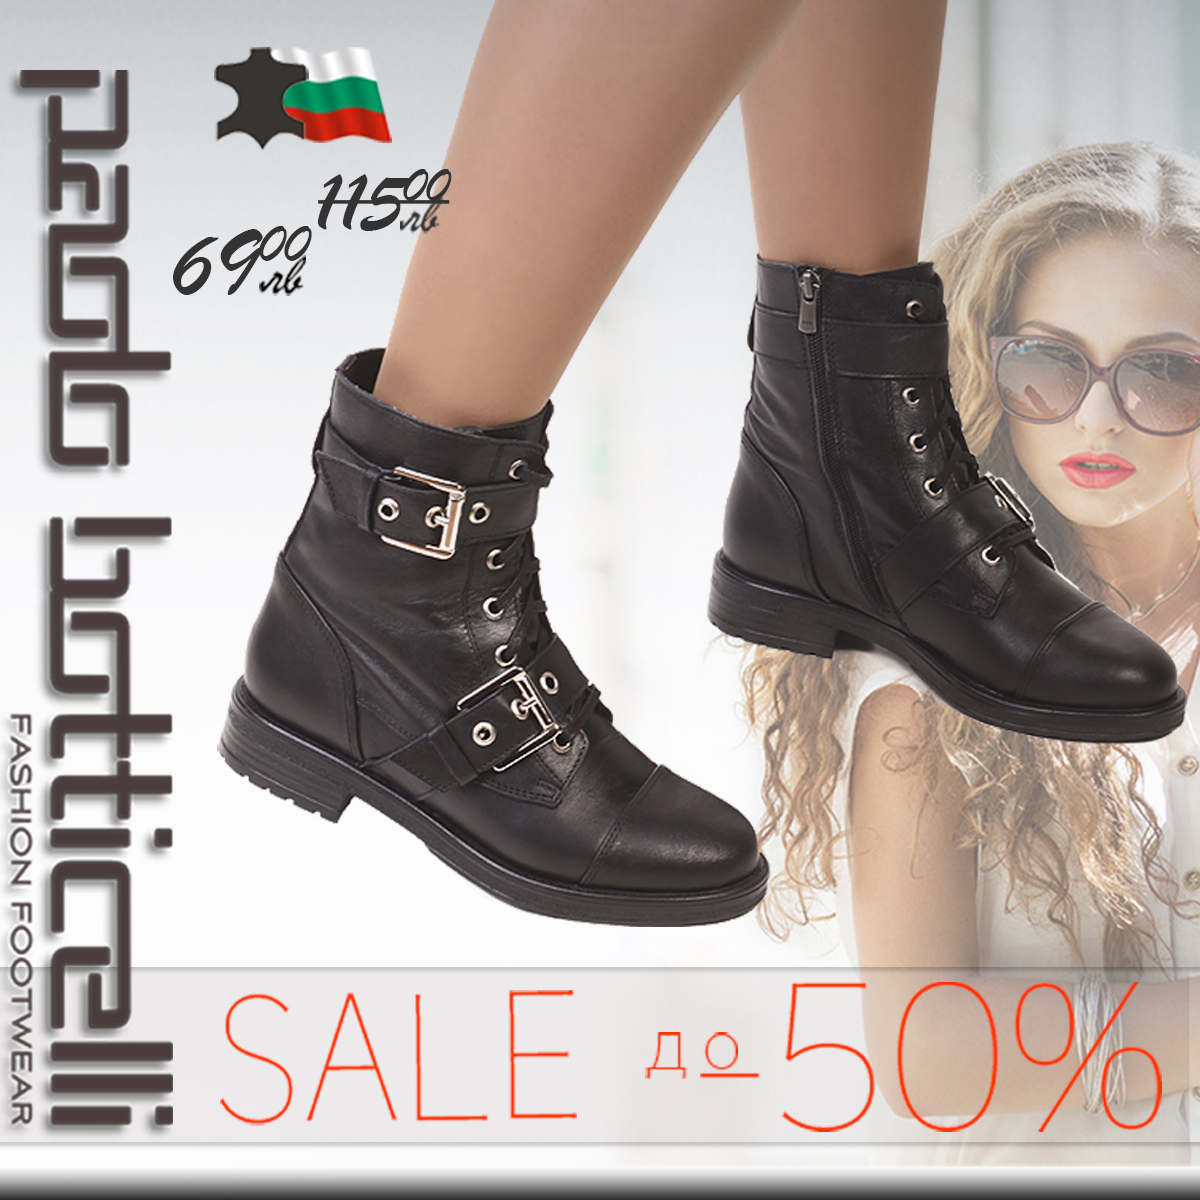 Discounts up to -50% at Paolo Botticelli